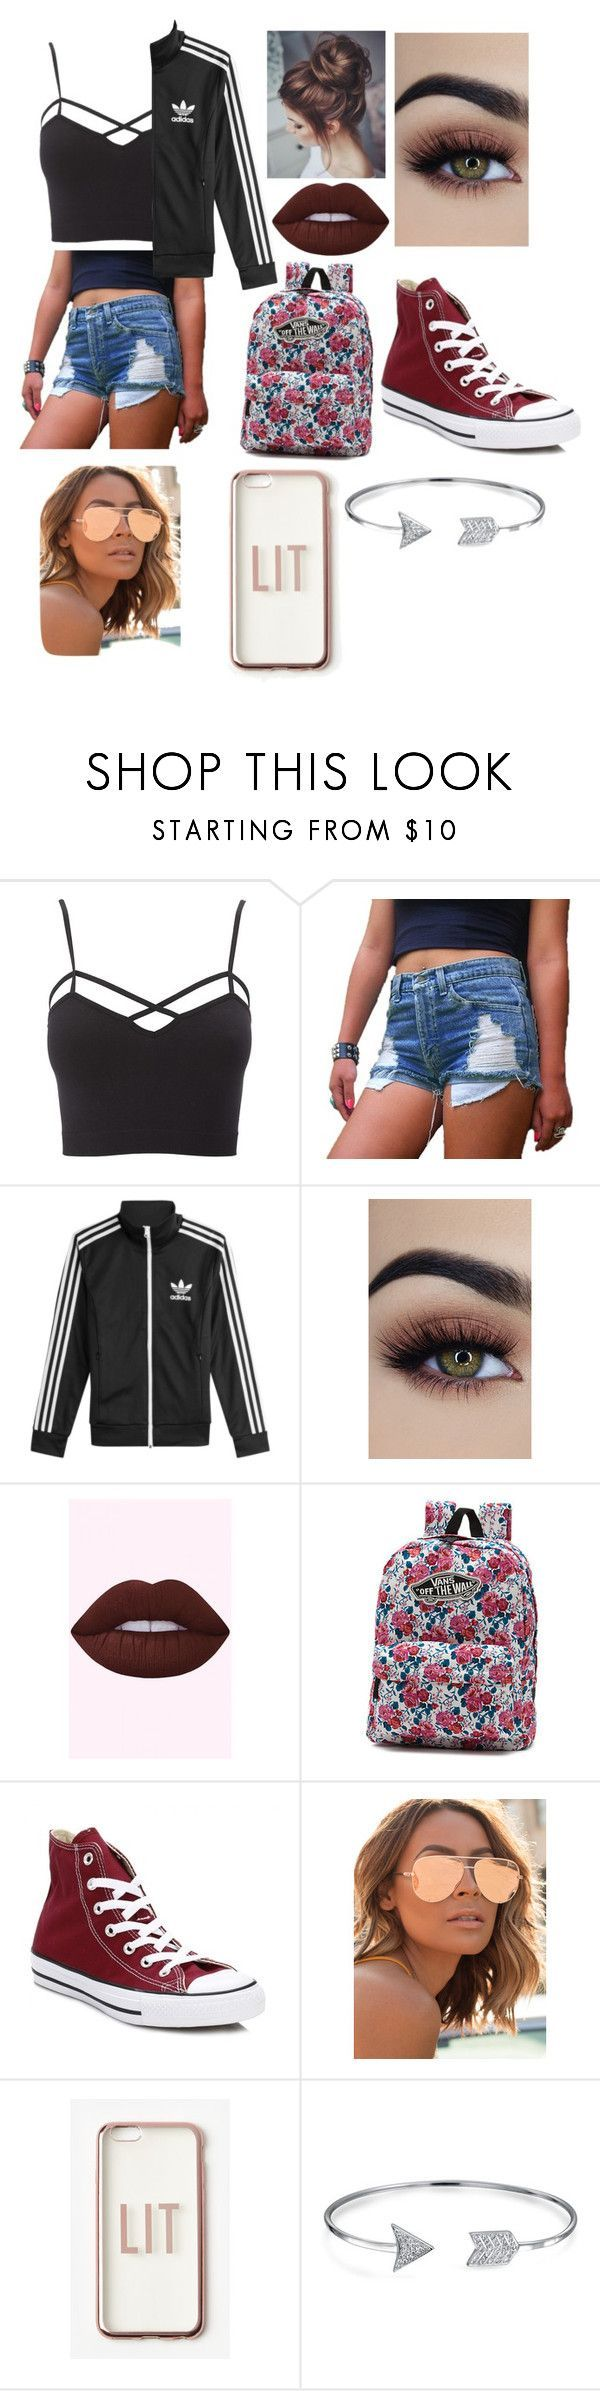 Untitled #15 by lemonitadr on Polyvore featuring Charlotte Russe, adidas, Converse, Vans, Bling Jewelry, Quay, Missguided and plus size clothing